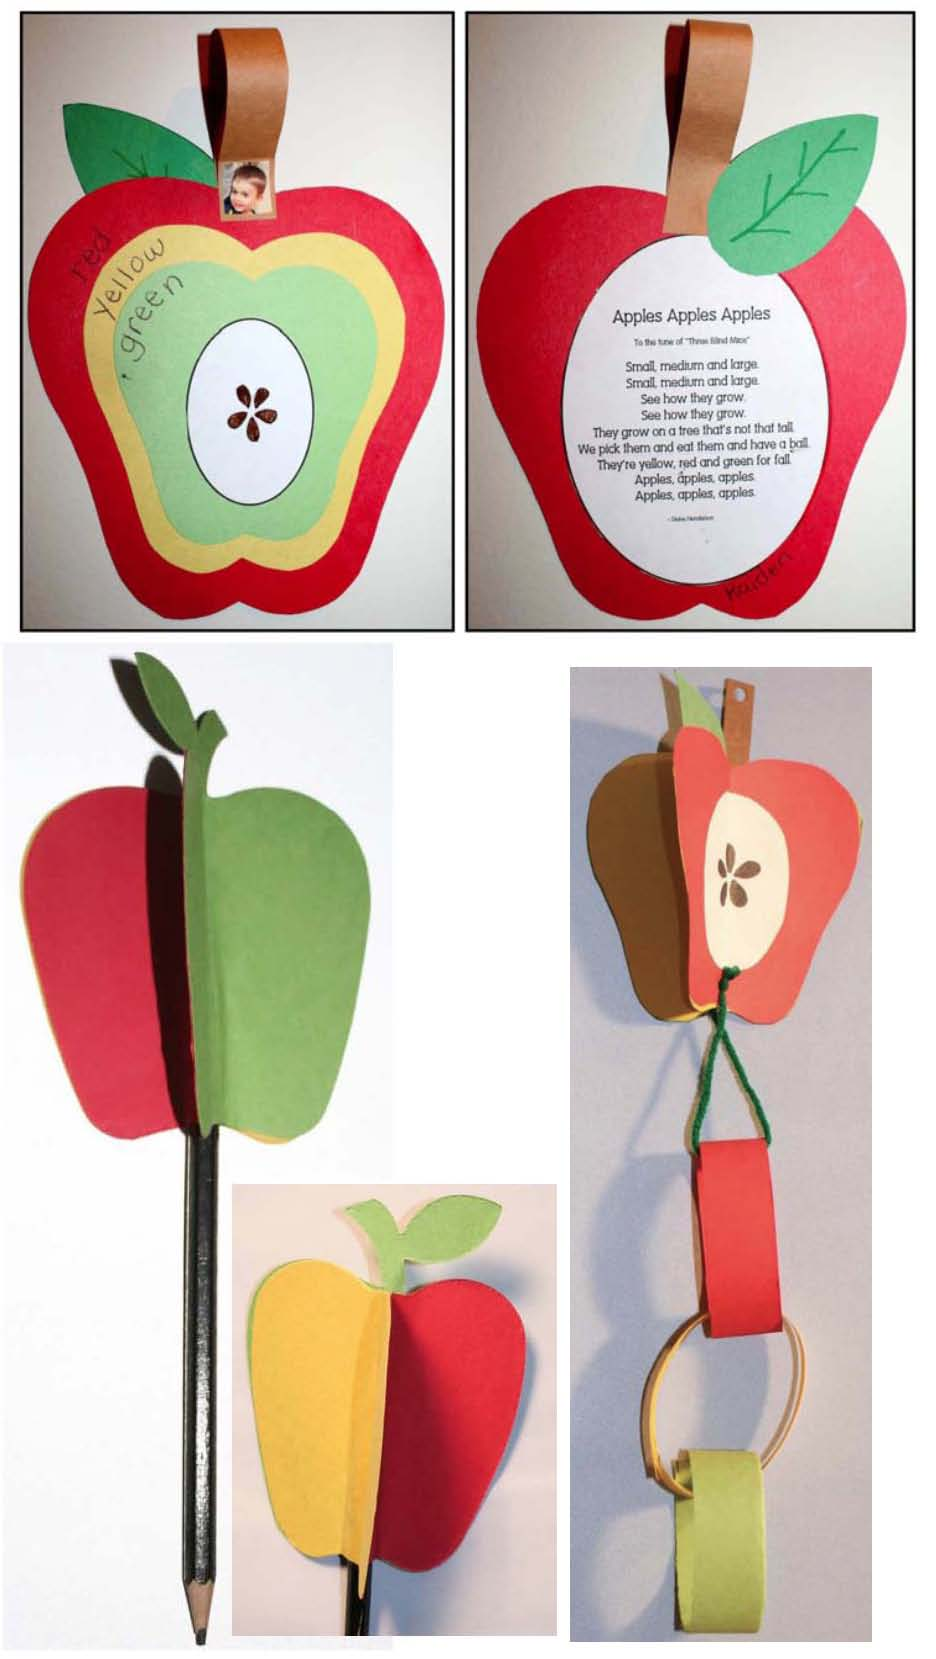 apple activities, apple games, apple crafts, 3 colors of apples, apple emergent reader,